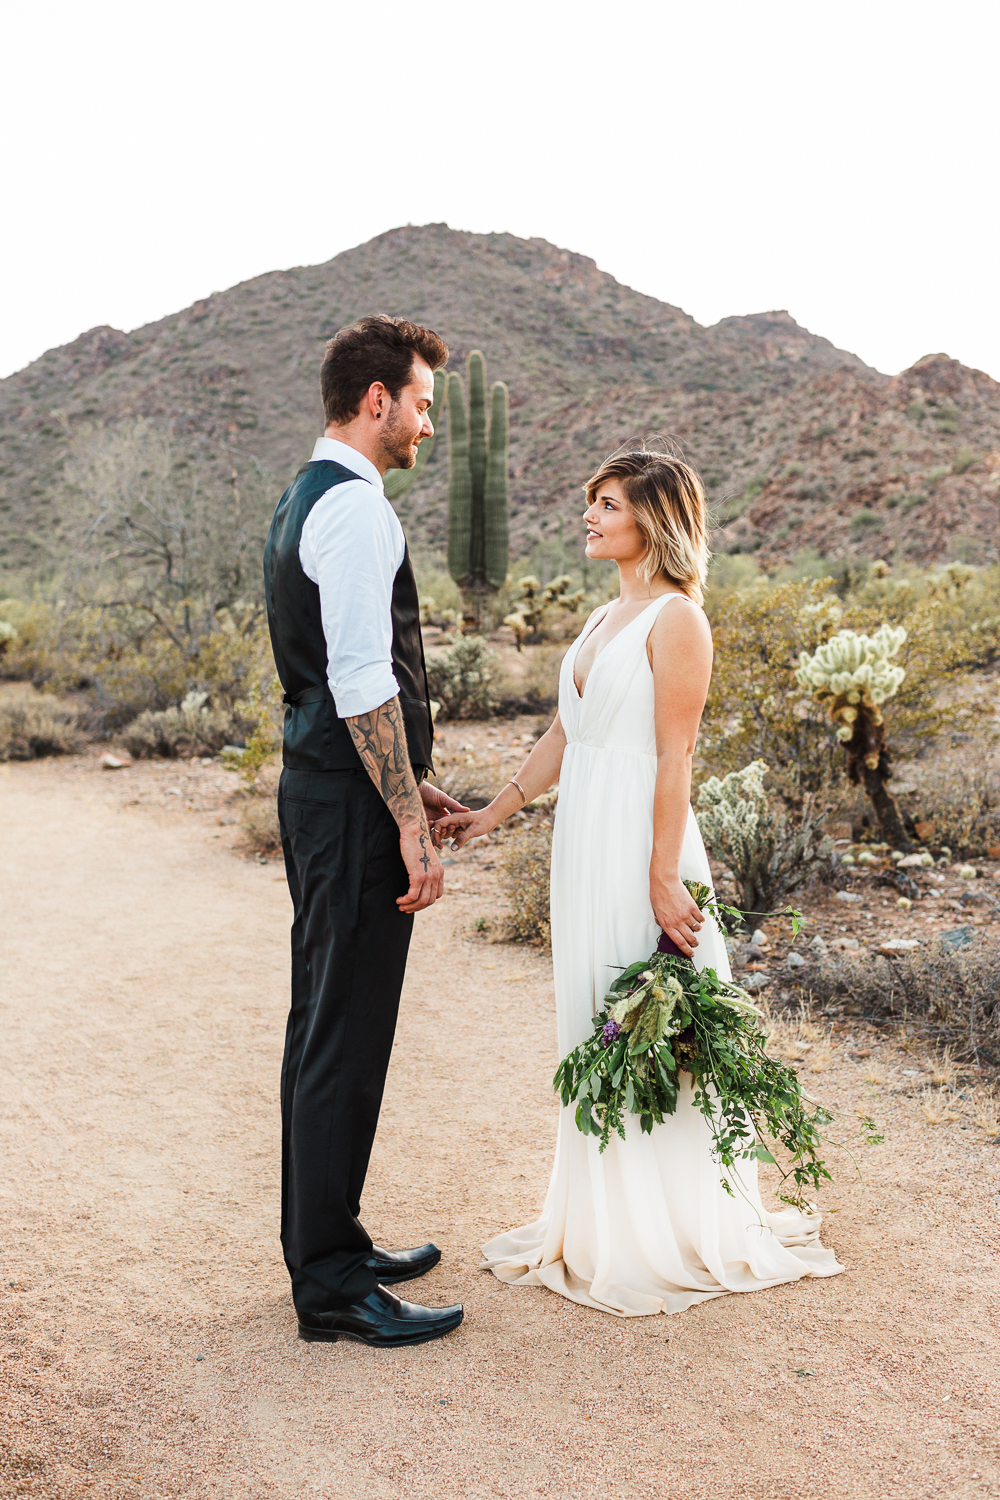 Arizona-Desert-Elopement-Emily-Kirke-Photography-2.jpg